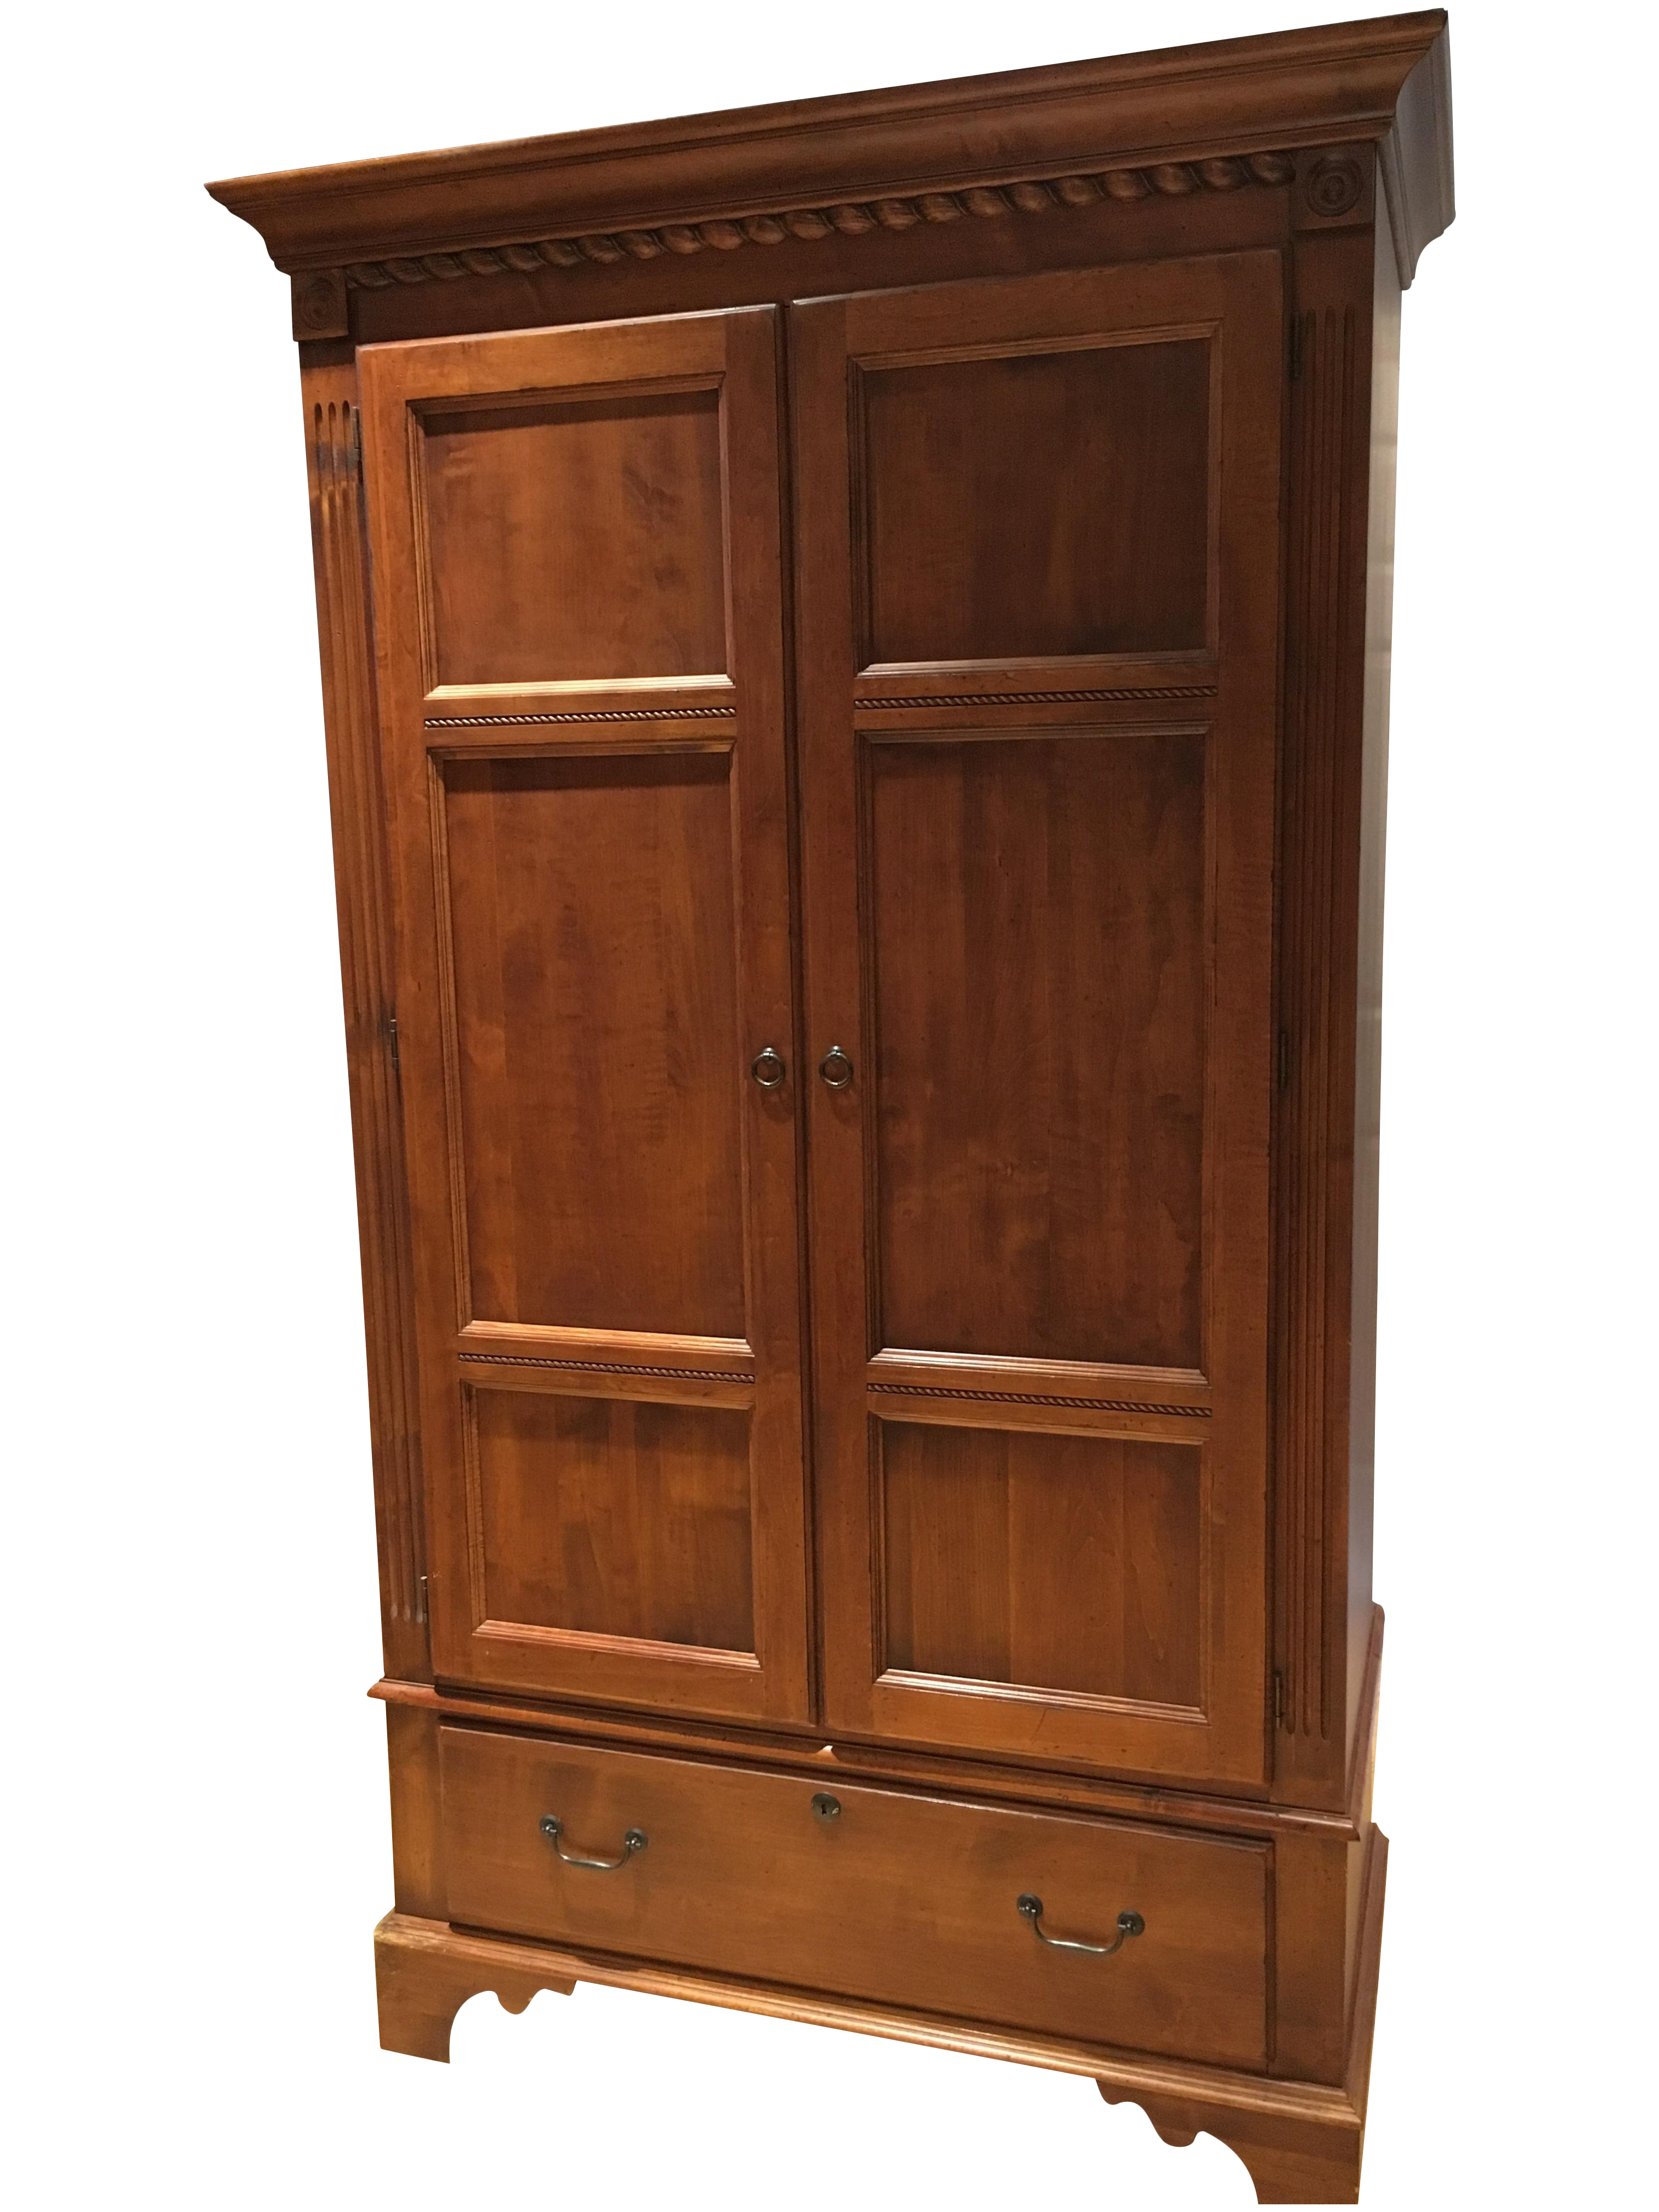 Ethan Allen Quot Country Crossings Quot Armoire Chairish